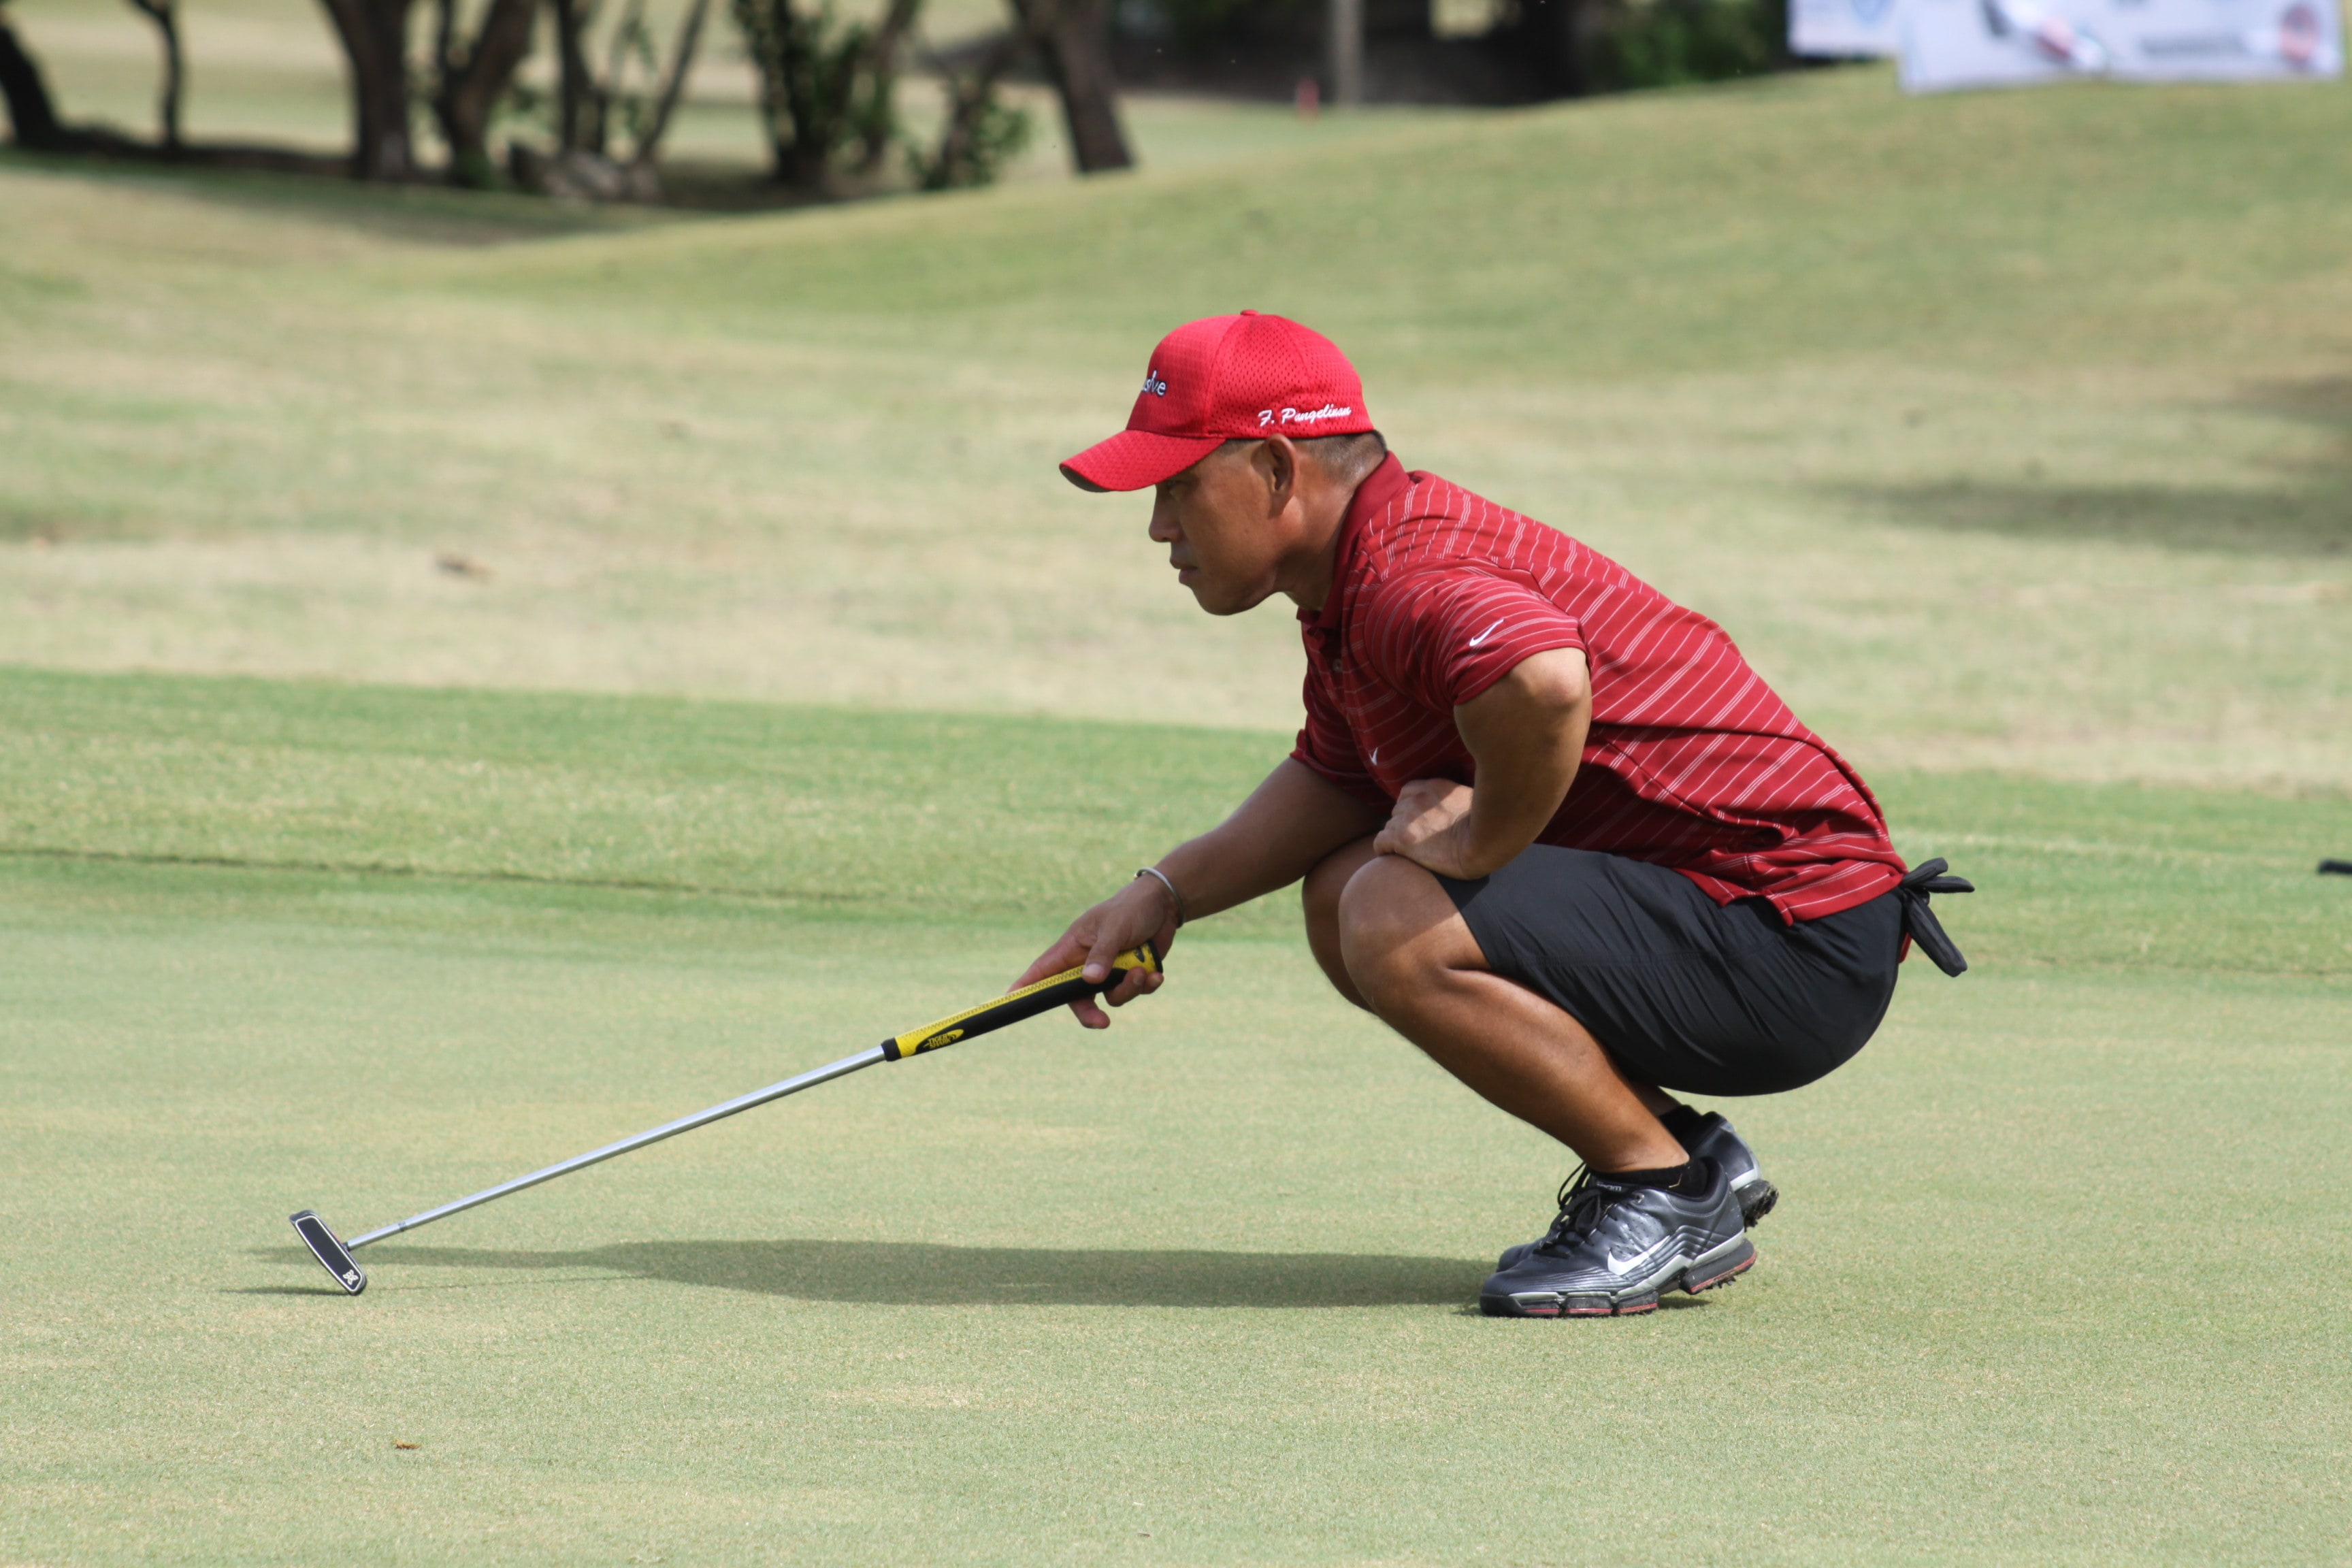 Golfers who have registered to play at the Northern Marianas College Foundation�s Golf Open on March 3, 2018 can take advantage of discounted practice rounds at Saipan LaoLao Bay Golf & Resort.